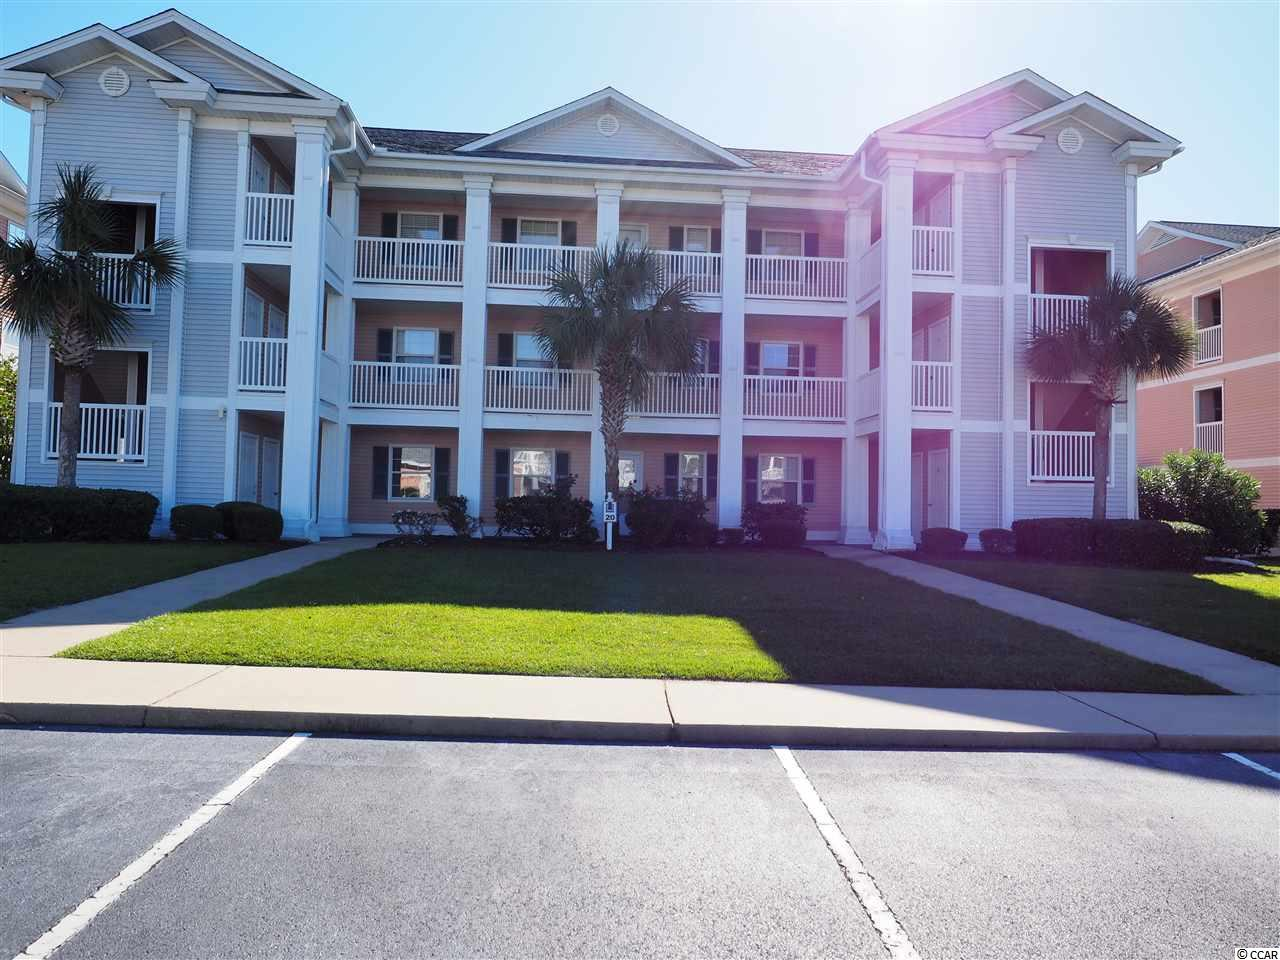 Best view in Water Village! 3rd floor corner facing east and looking over the magnificent outdoor pool and hot tub, the waterfront amenity, and of course the intracoastal waterway, and the untouched property across the way. The interior lake area accompanies the indoor heated pool, tennis facility, putting green, bridge and cabana area. Inside, cathedral ceiling,  outdoor deck area. LVT floors in the wet areas, electric heater,fireplace and lots more. Two bedroom, two bath  corner  unit with incredible waterway view off the Screened in porch.  Indoor and outdoor pools, tennis court, putting green, basketball court, waterway and lake gazebos.  Waterway pier and dry dock. easy access to River Oaks Golf course.